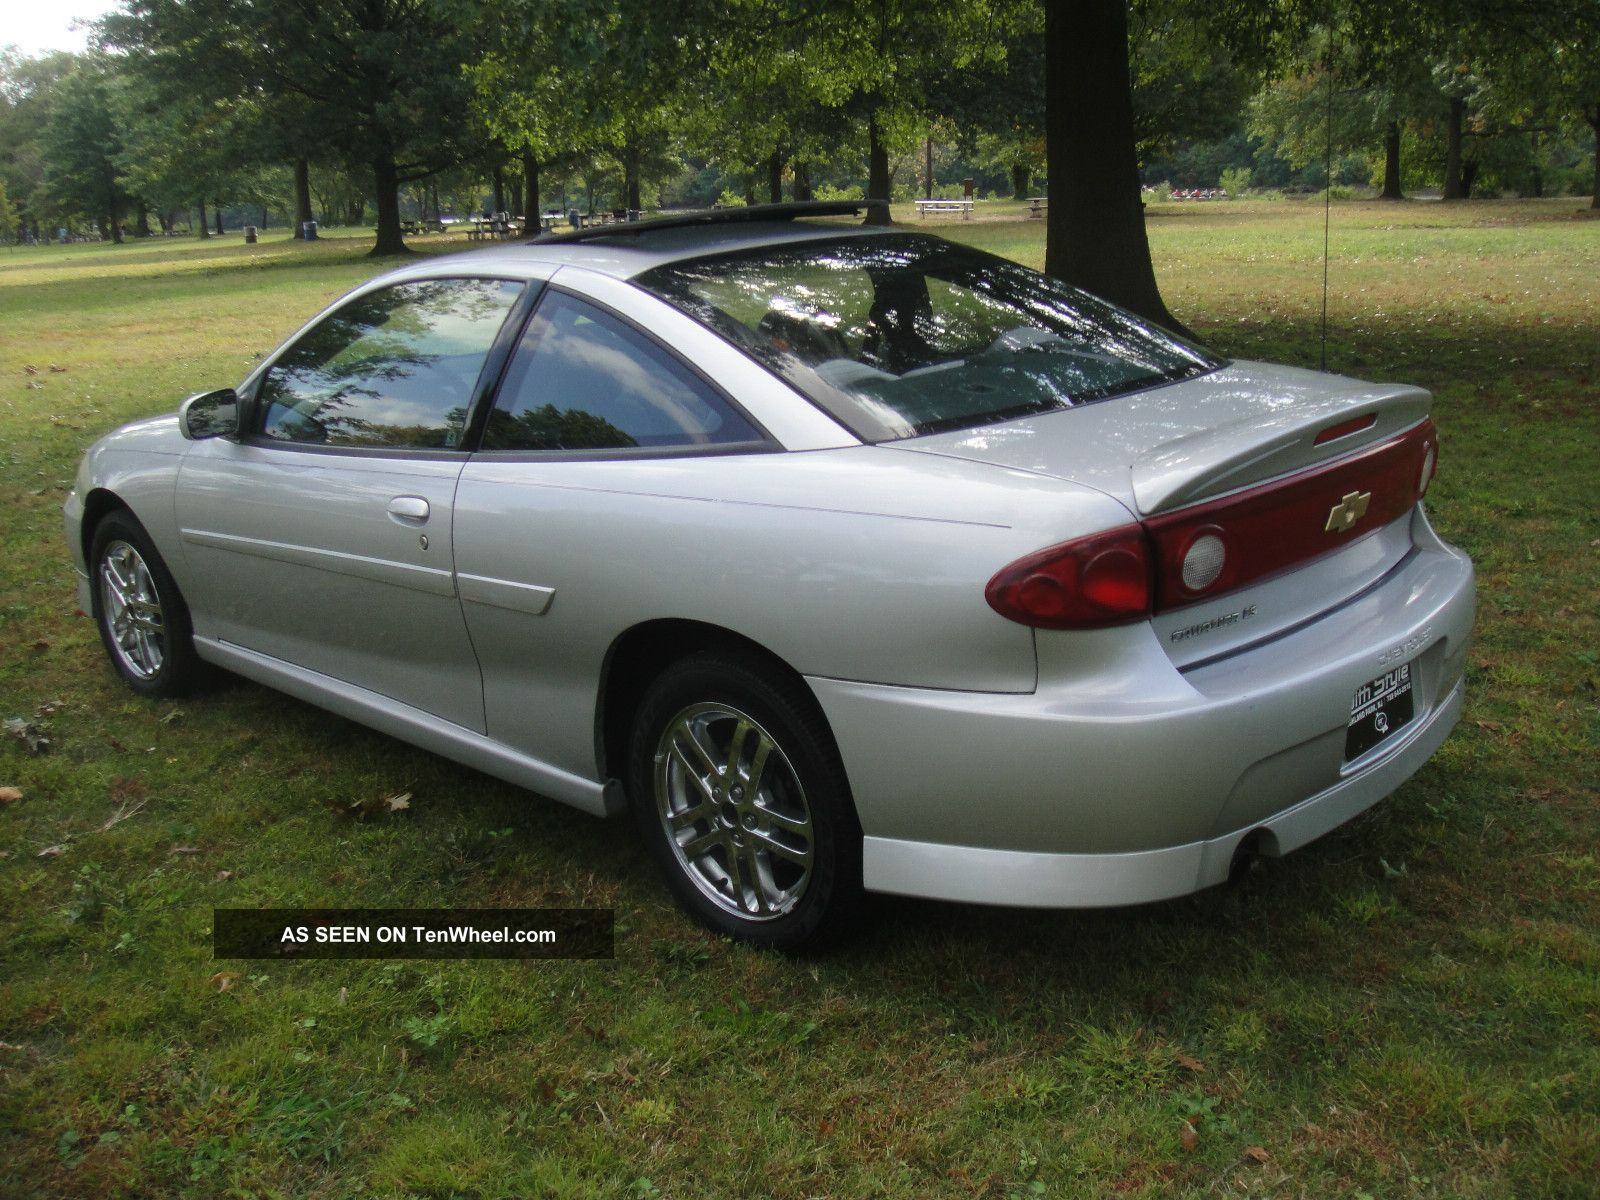 2005 chevrolet cavalier ls sport coupe fully loaded cavalier photo 7. Cars Review. Best American Auto & Cars Review